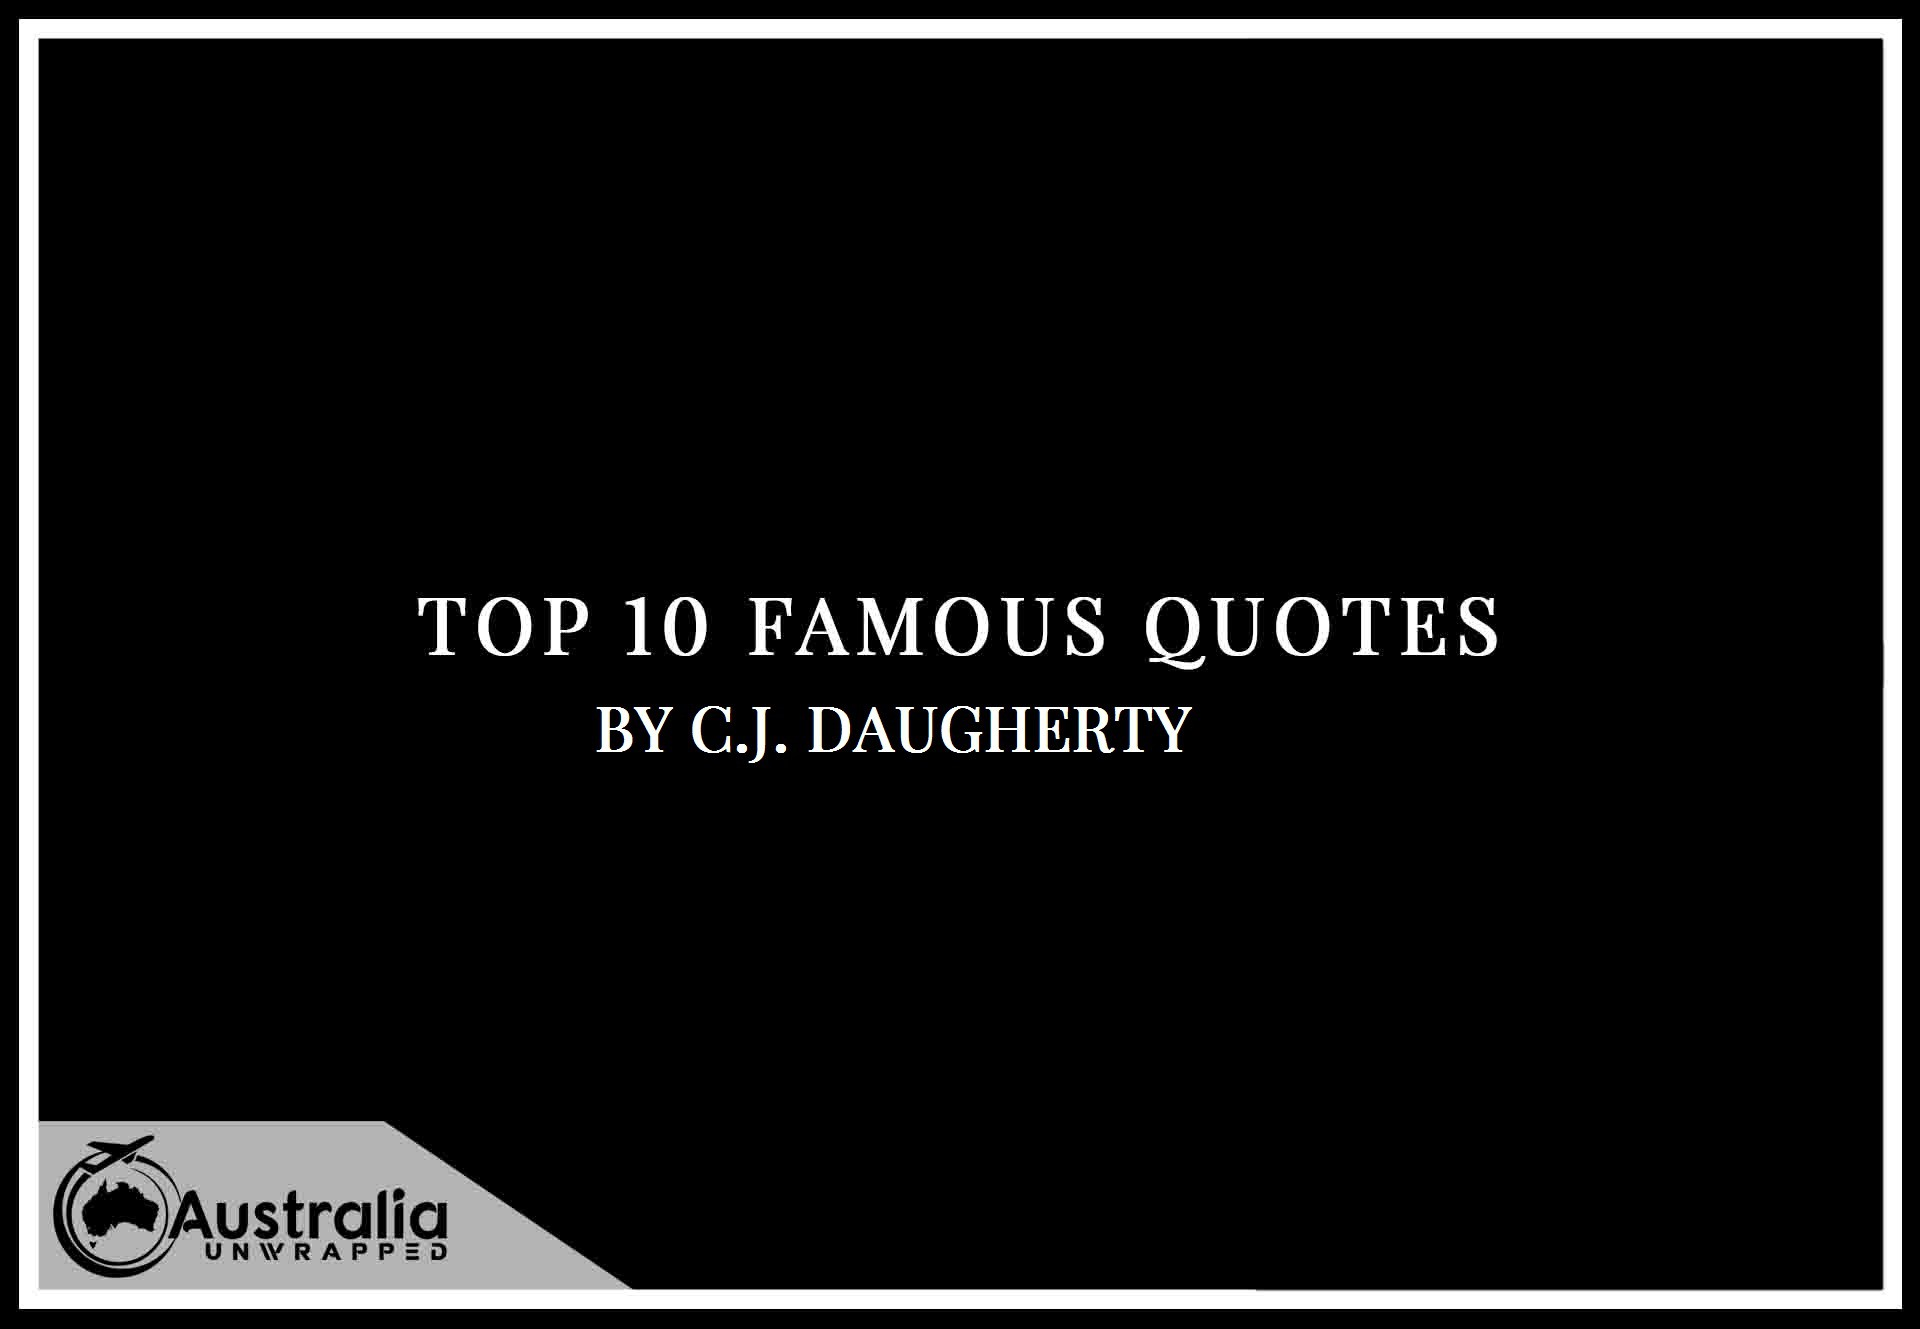 C.J. Daugherty's Top 10 Popular and Famous Quotes